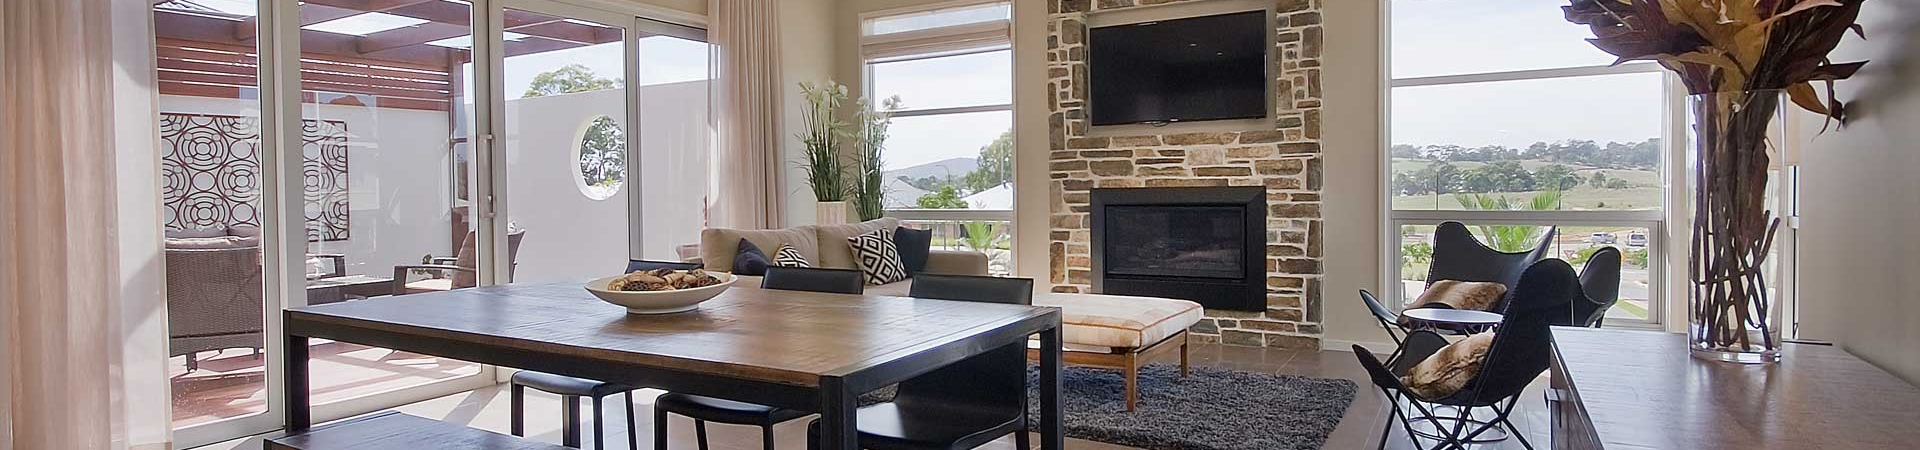 Rossdale Homes Fire Place 2